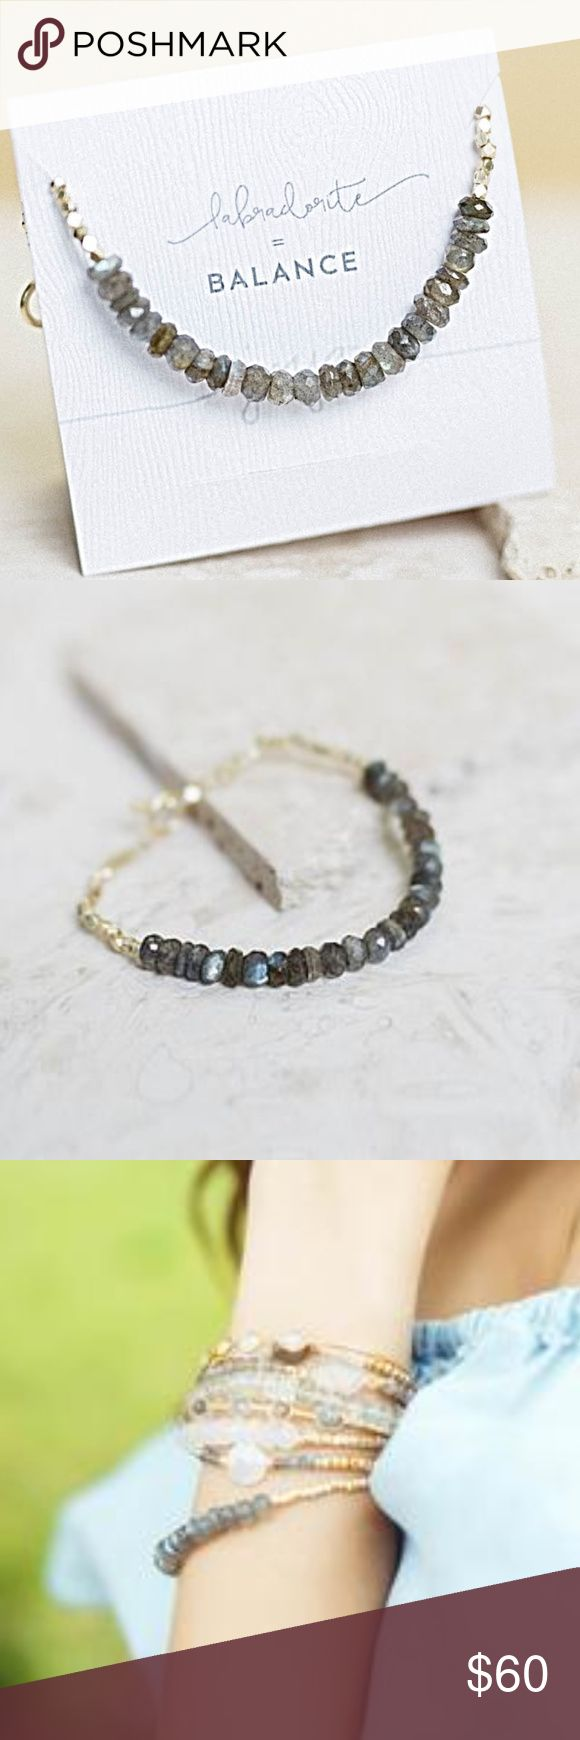 """Verena Labradorite Bracelet Natural, faceted moonstone and pyrite beads. Toggle clasp in solid brass. Perfect for layering. 7.5"""" long  $10.00 from each Verena Bracelet sold will be donated to The Pink Agenda, an organization committed to raising money for breast cancer research and care, as well as awareness of the disease among young professionals.  Price is firm unless bundled. Jewelry Bracelets"""